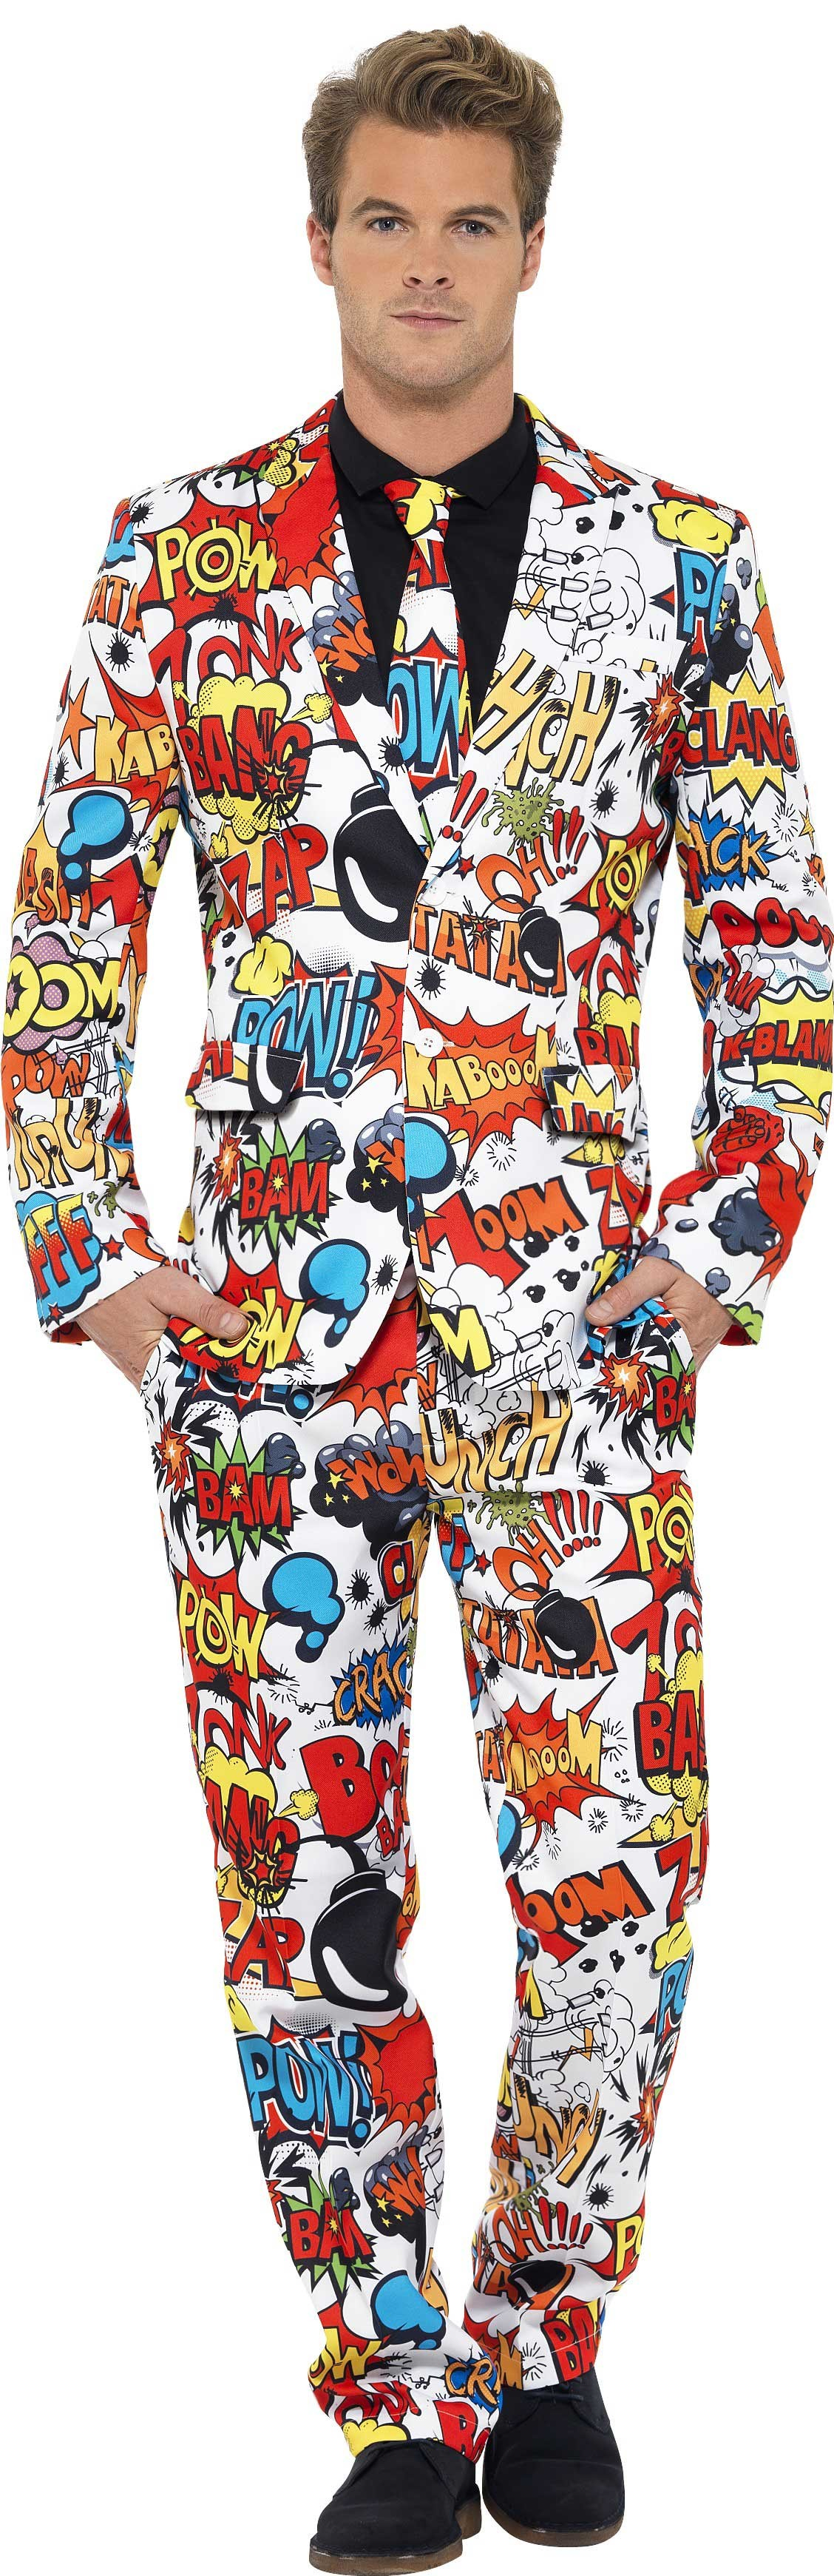 Men'S Comic Strip Action Panel Stand Out Suit Fancy Dress Costume